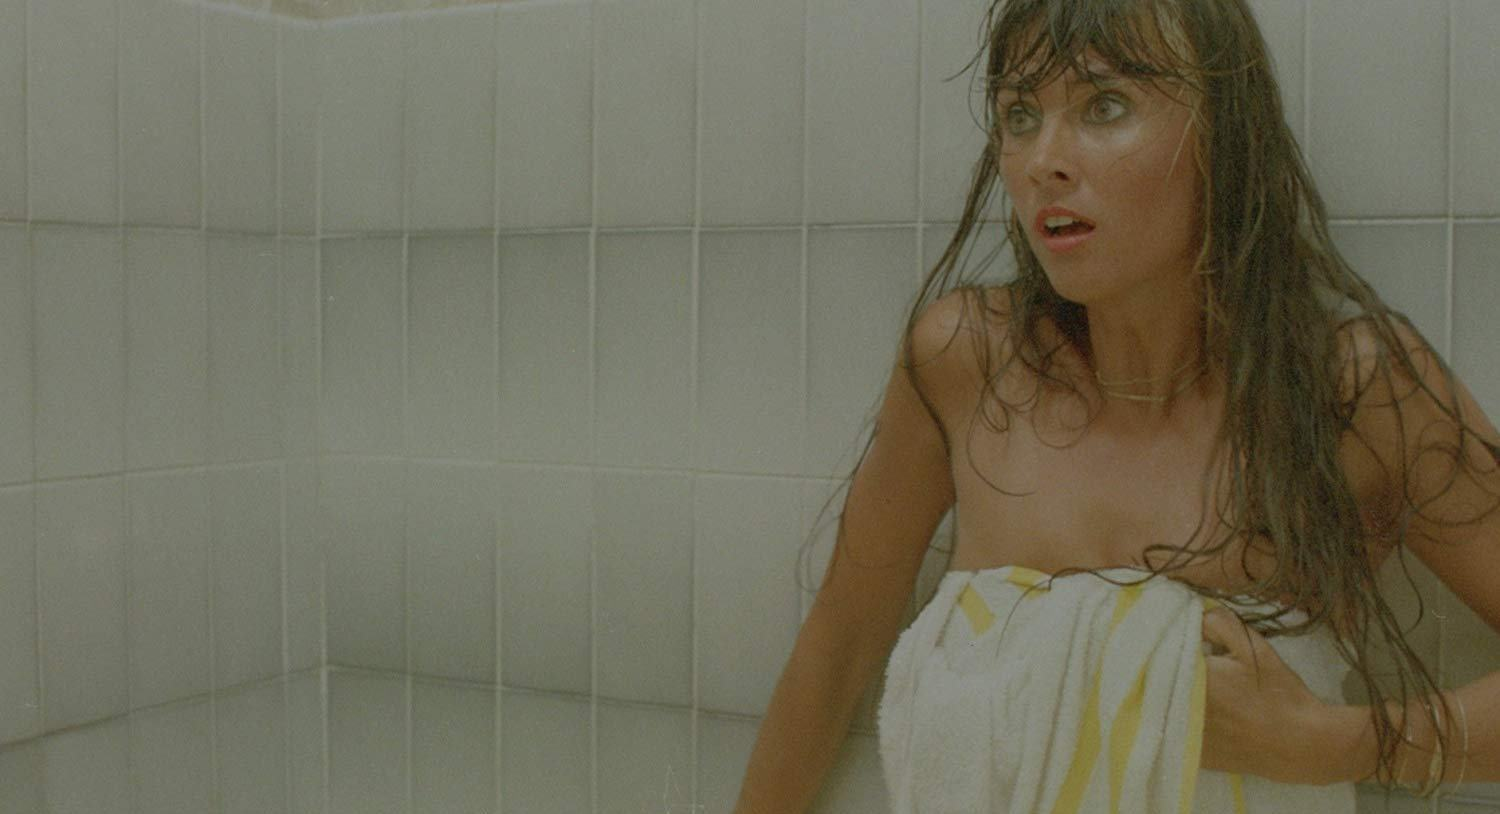 Caroline Munro in towel in The Last Horror Film (1982)